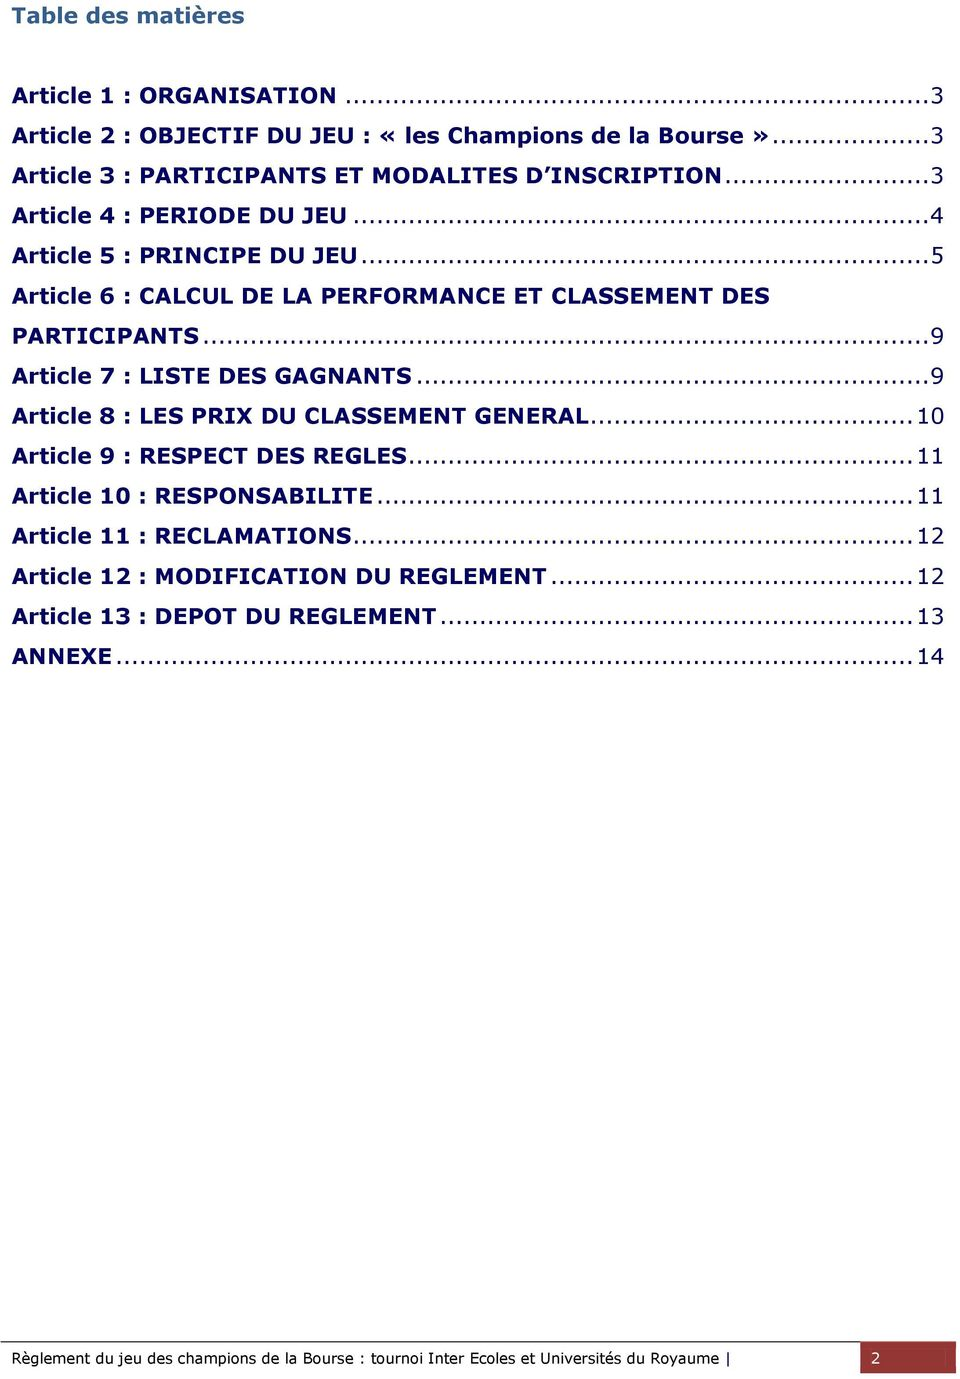 .. 9 Article 8 : LES PRIX DU CLASSEMENT GENERAL... 10 Article 9 : RESPECT DES REGLES... 11 Article 10 : RESPONSABILITE... 11 Article 11 : RECLAMATIONS.